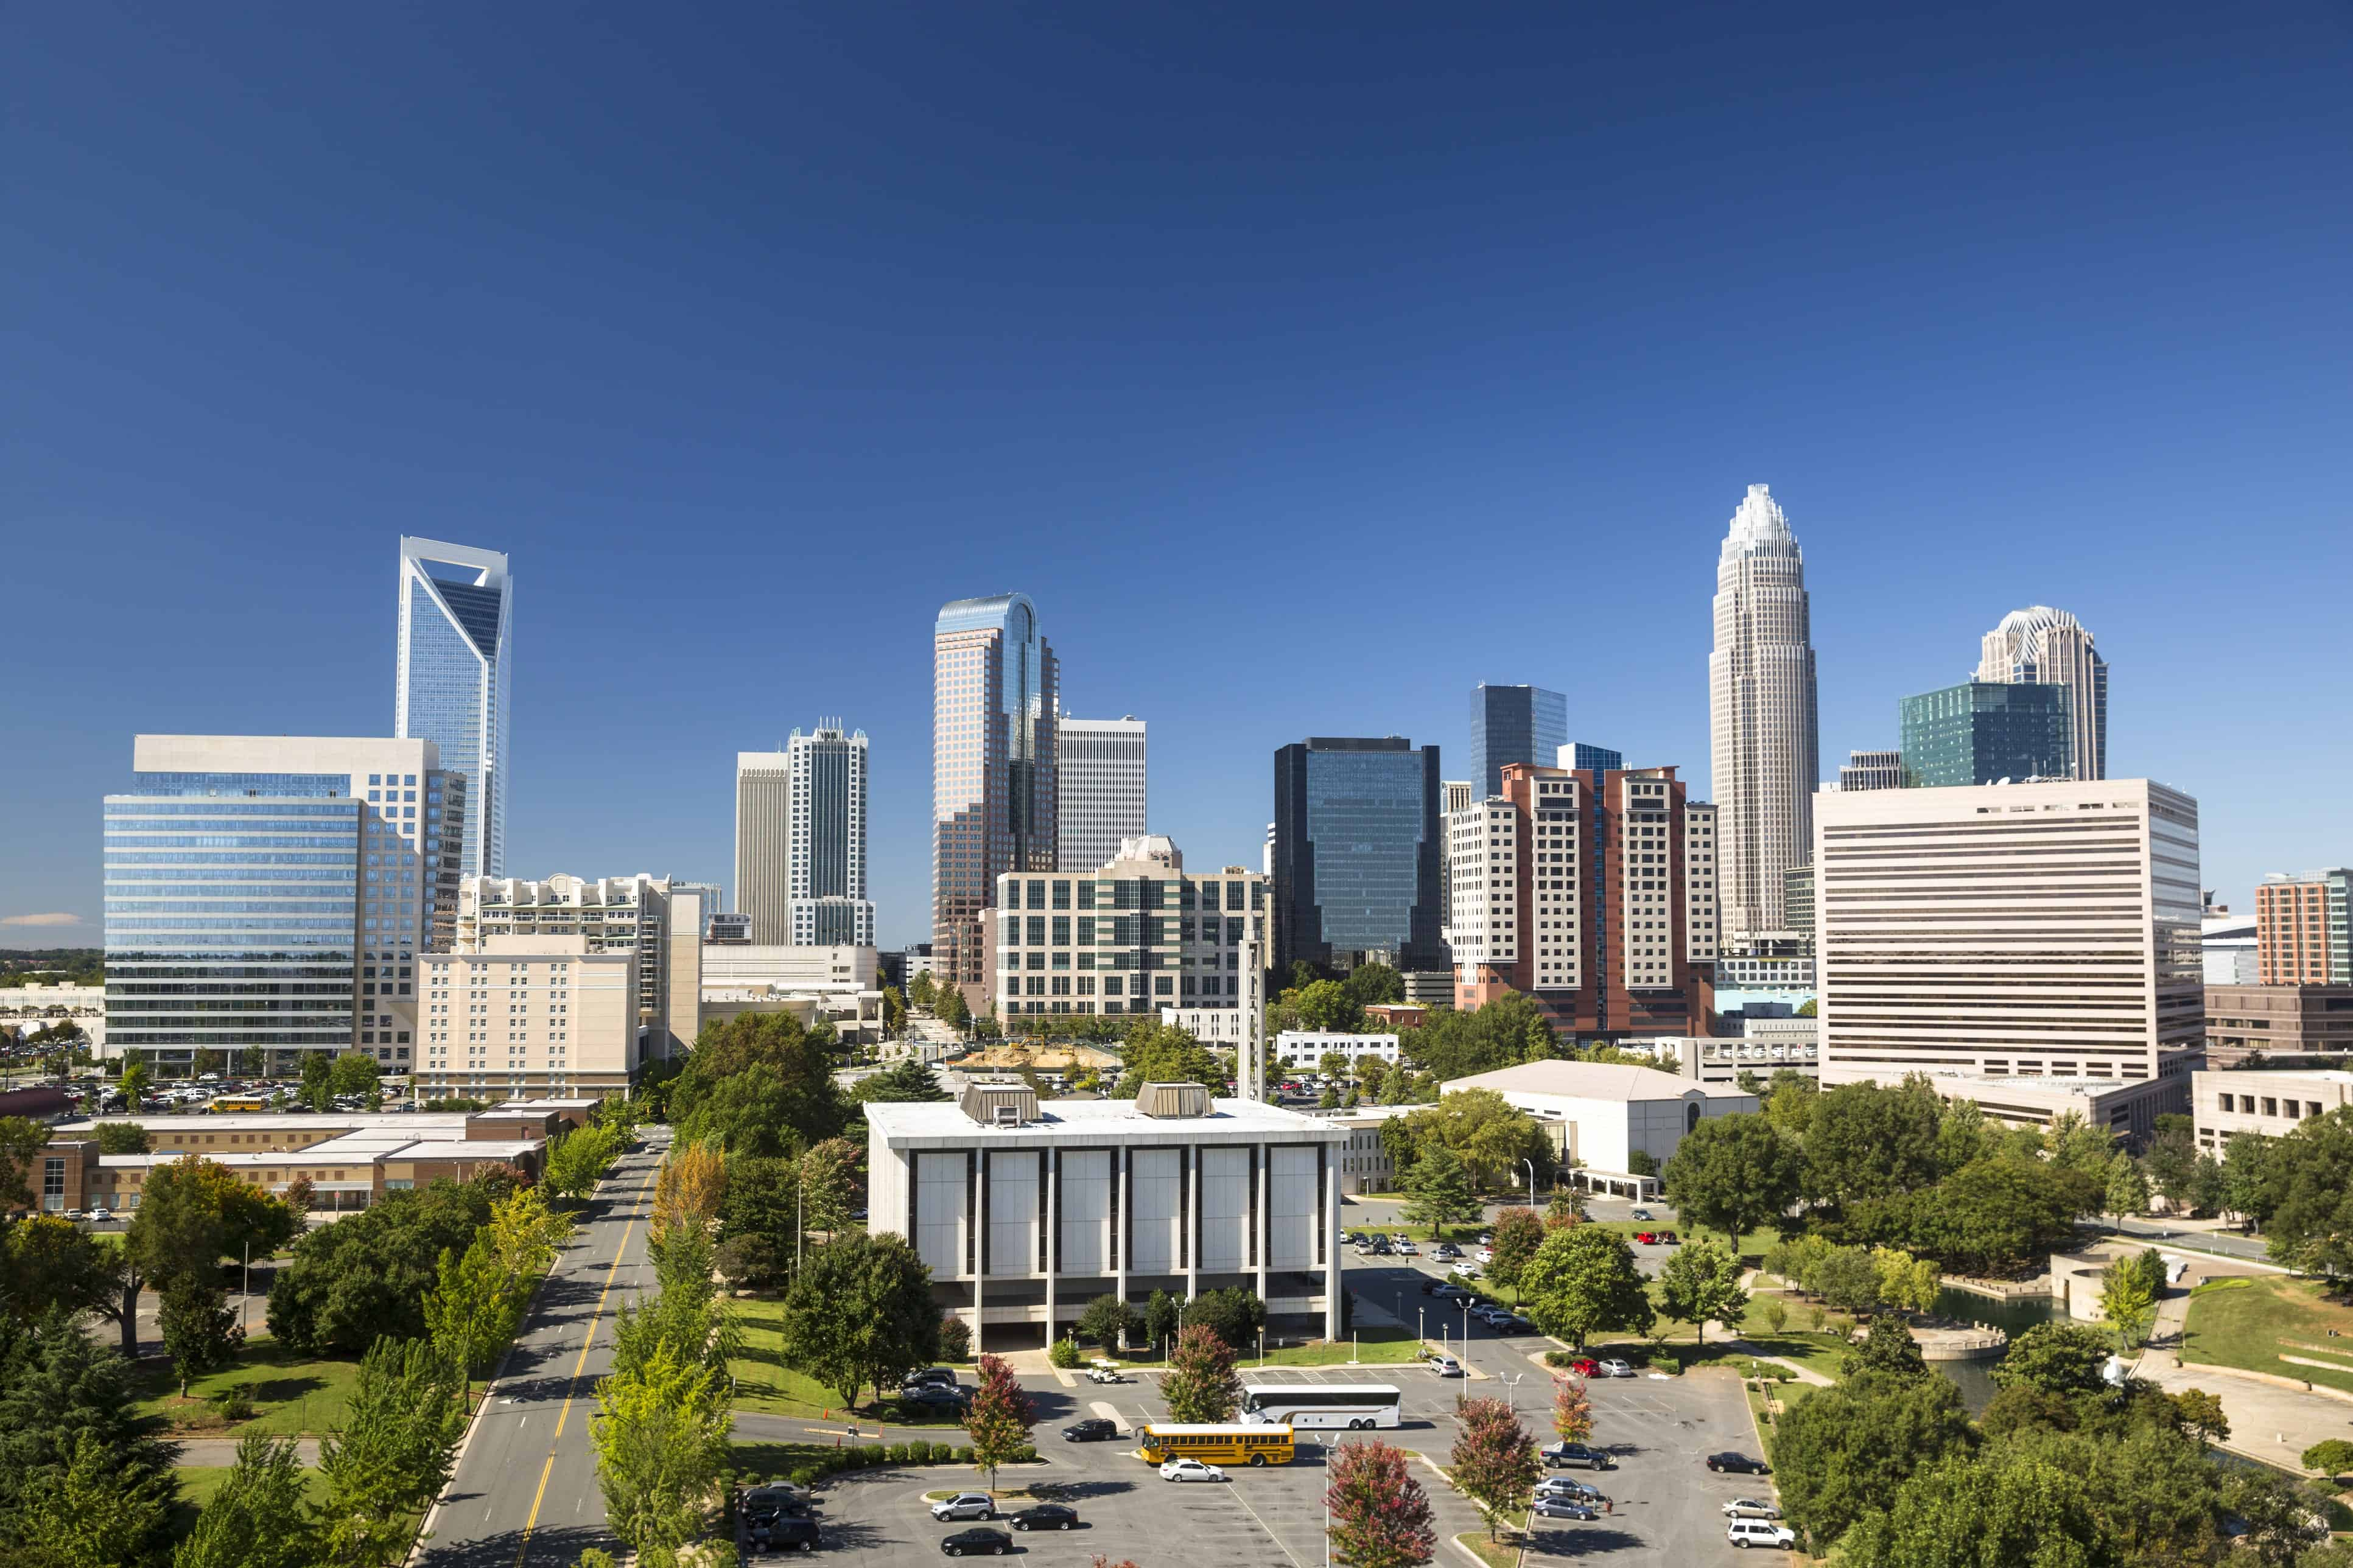 Image of Charlotte Skyline with text